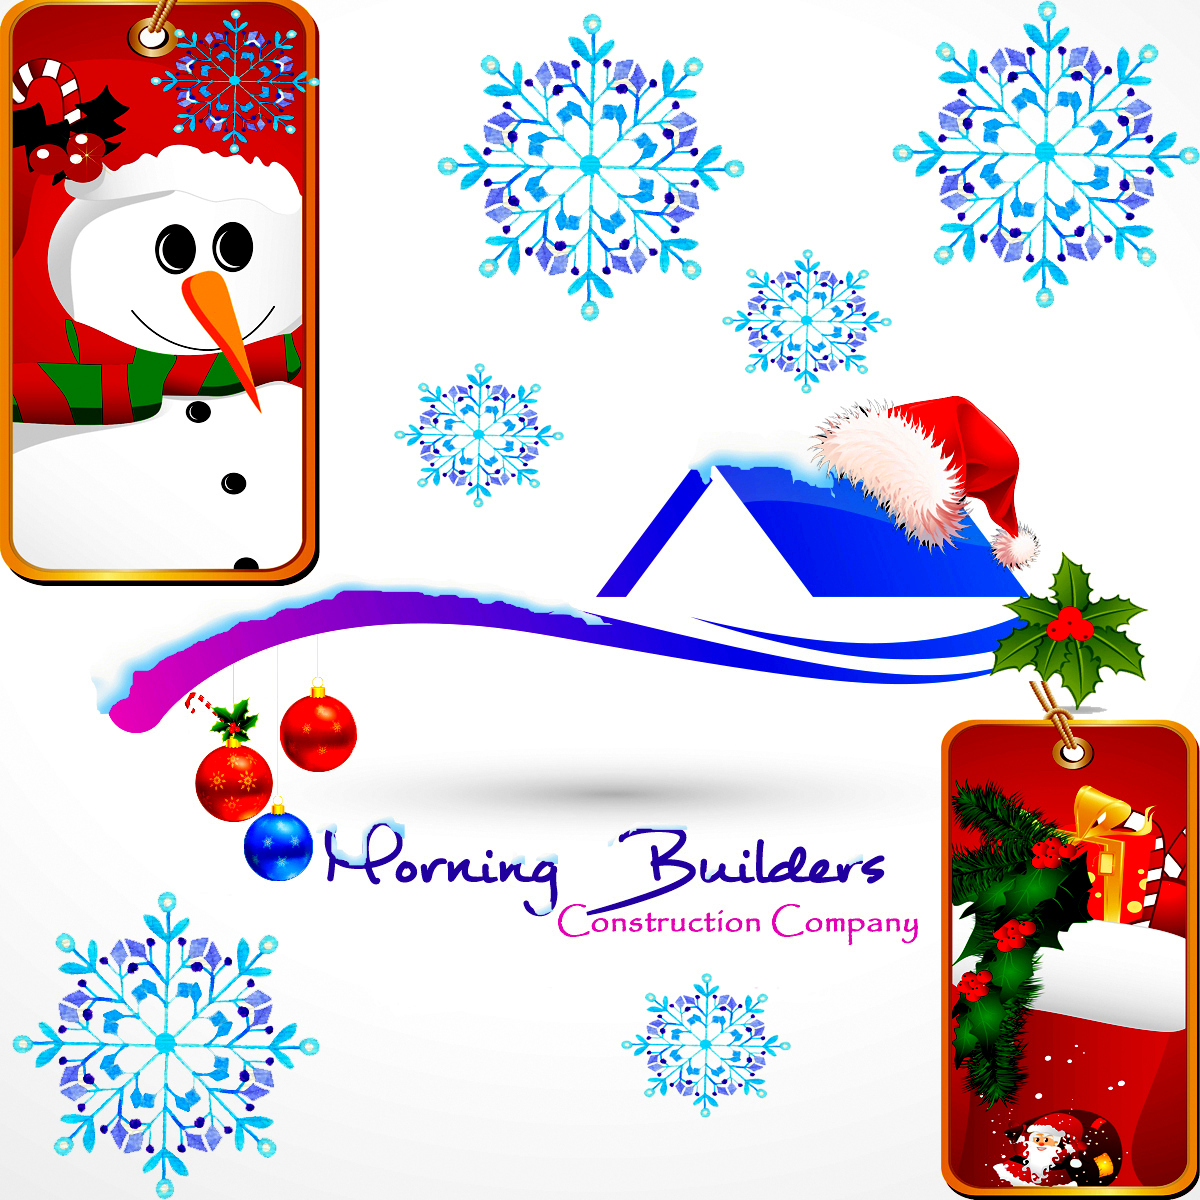 decorate your logo for Christmas